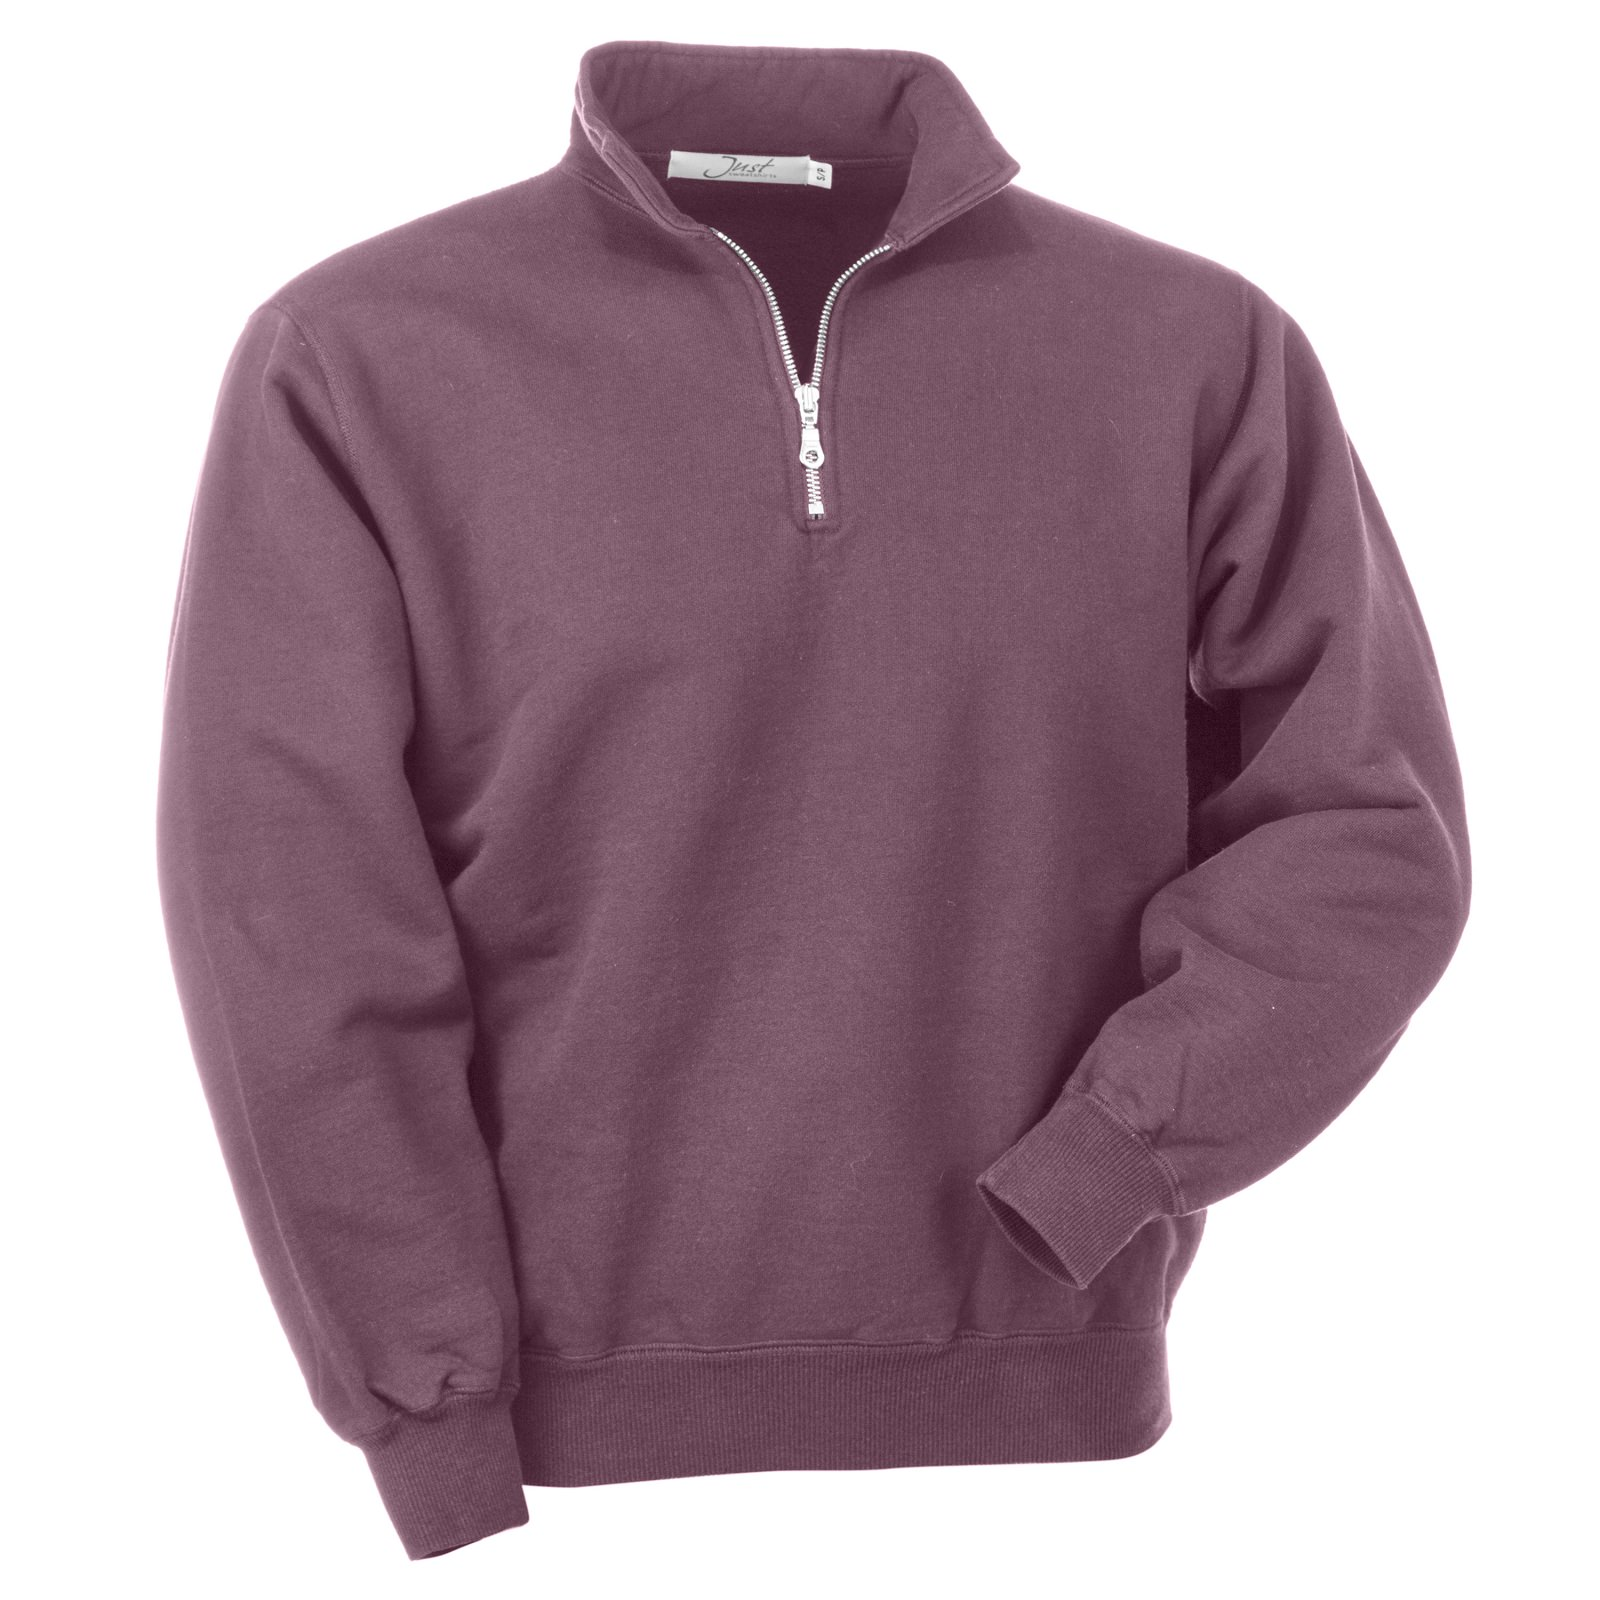 Zip Neck Burgundy Sand 100% Cotton